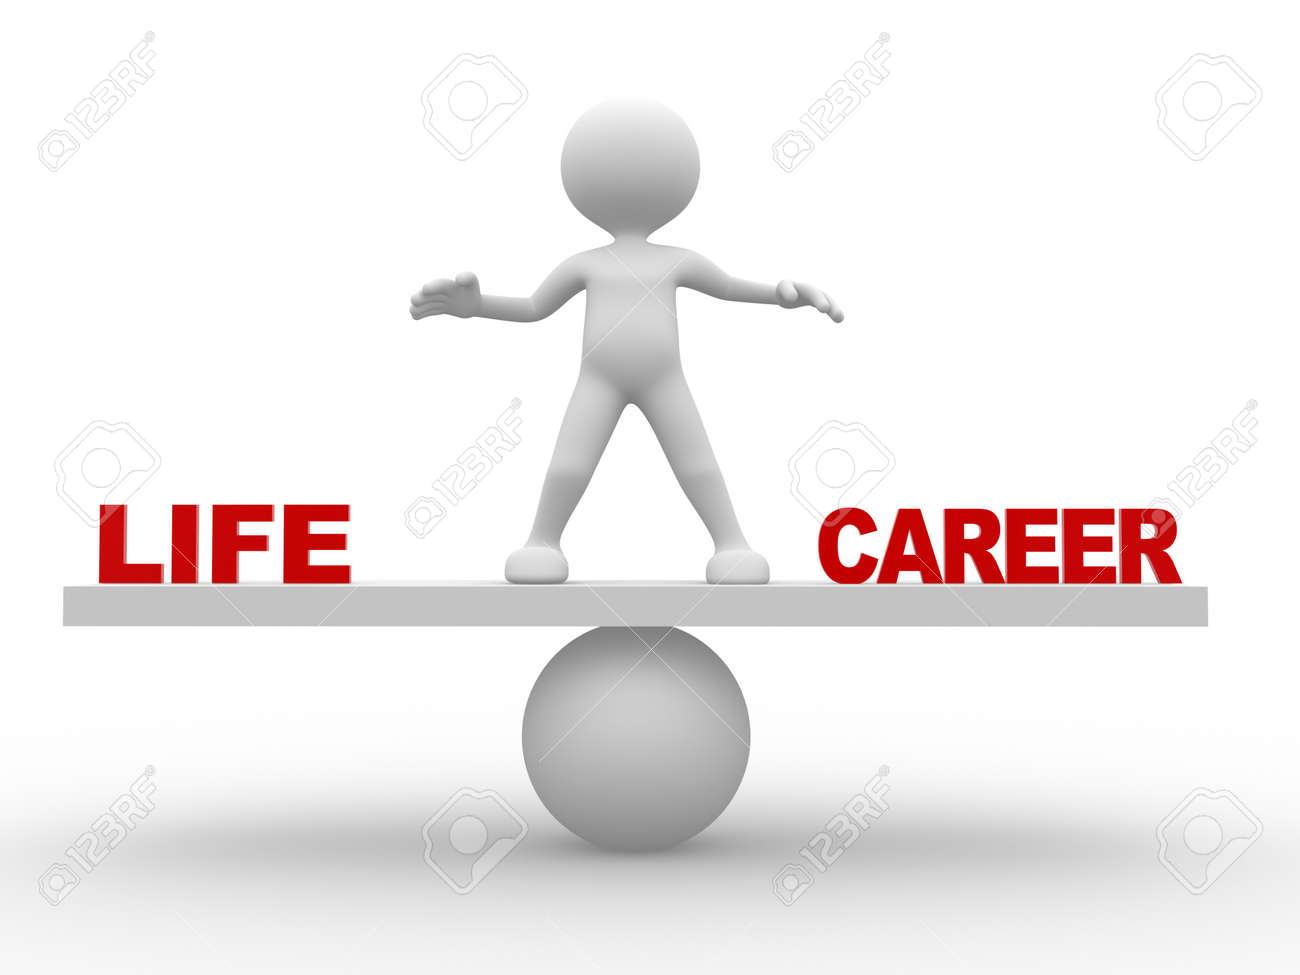 3d people man person concept of balance in life and career 3d people man person concept of balance in life and career stock photo